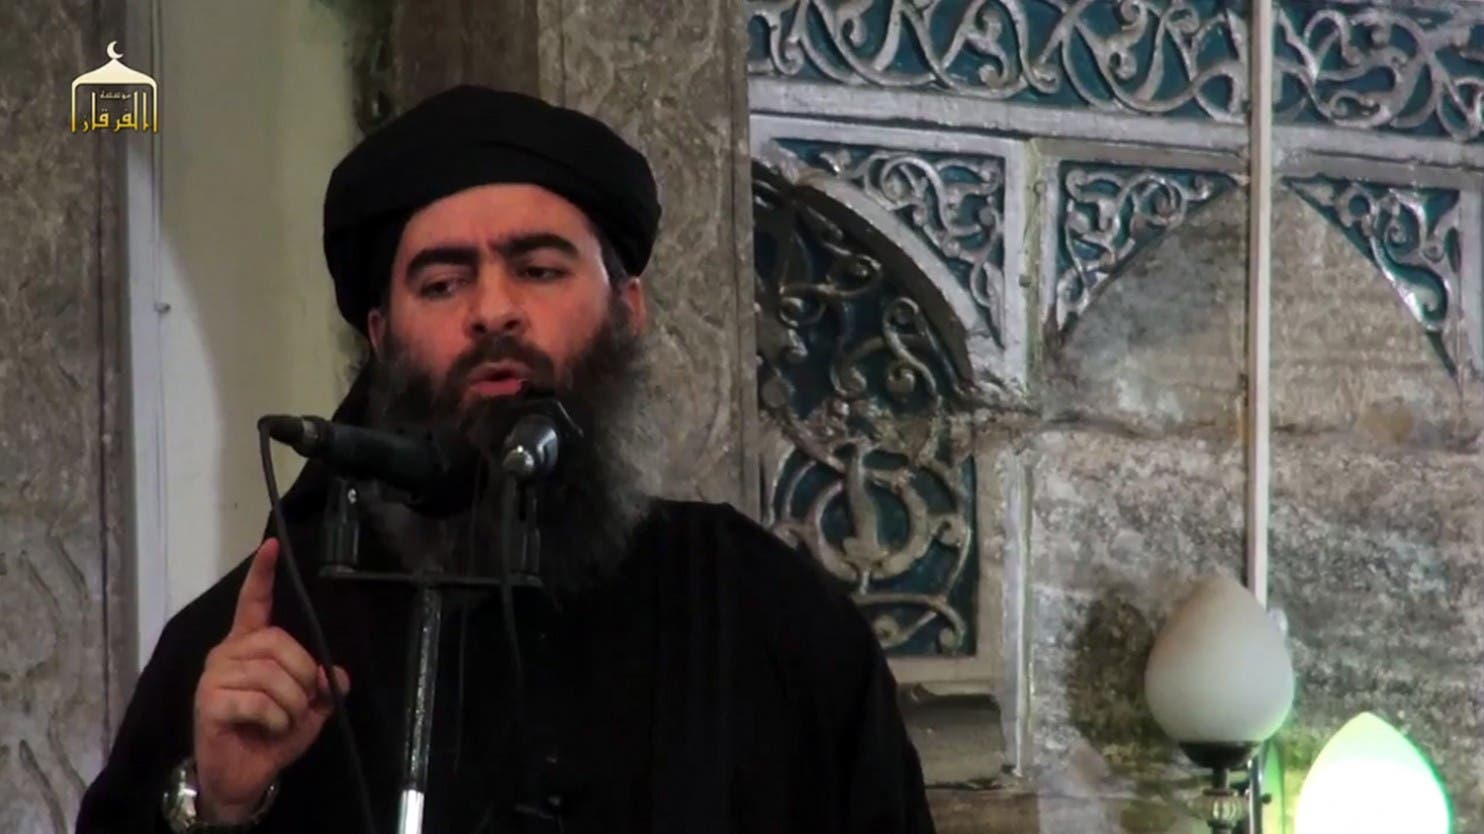 This file photo taken on July 5, 2014 shows the leader of the Islamic State, Abu Bakr al-Baghdadi, speaking in Mosul. (AFP)